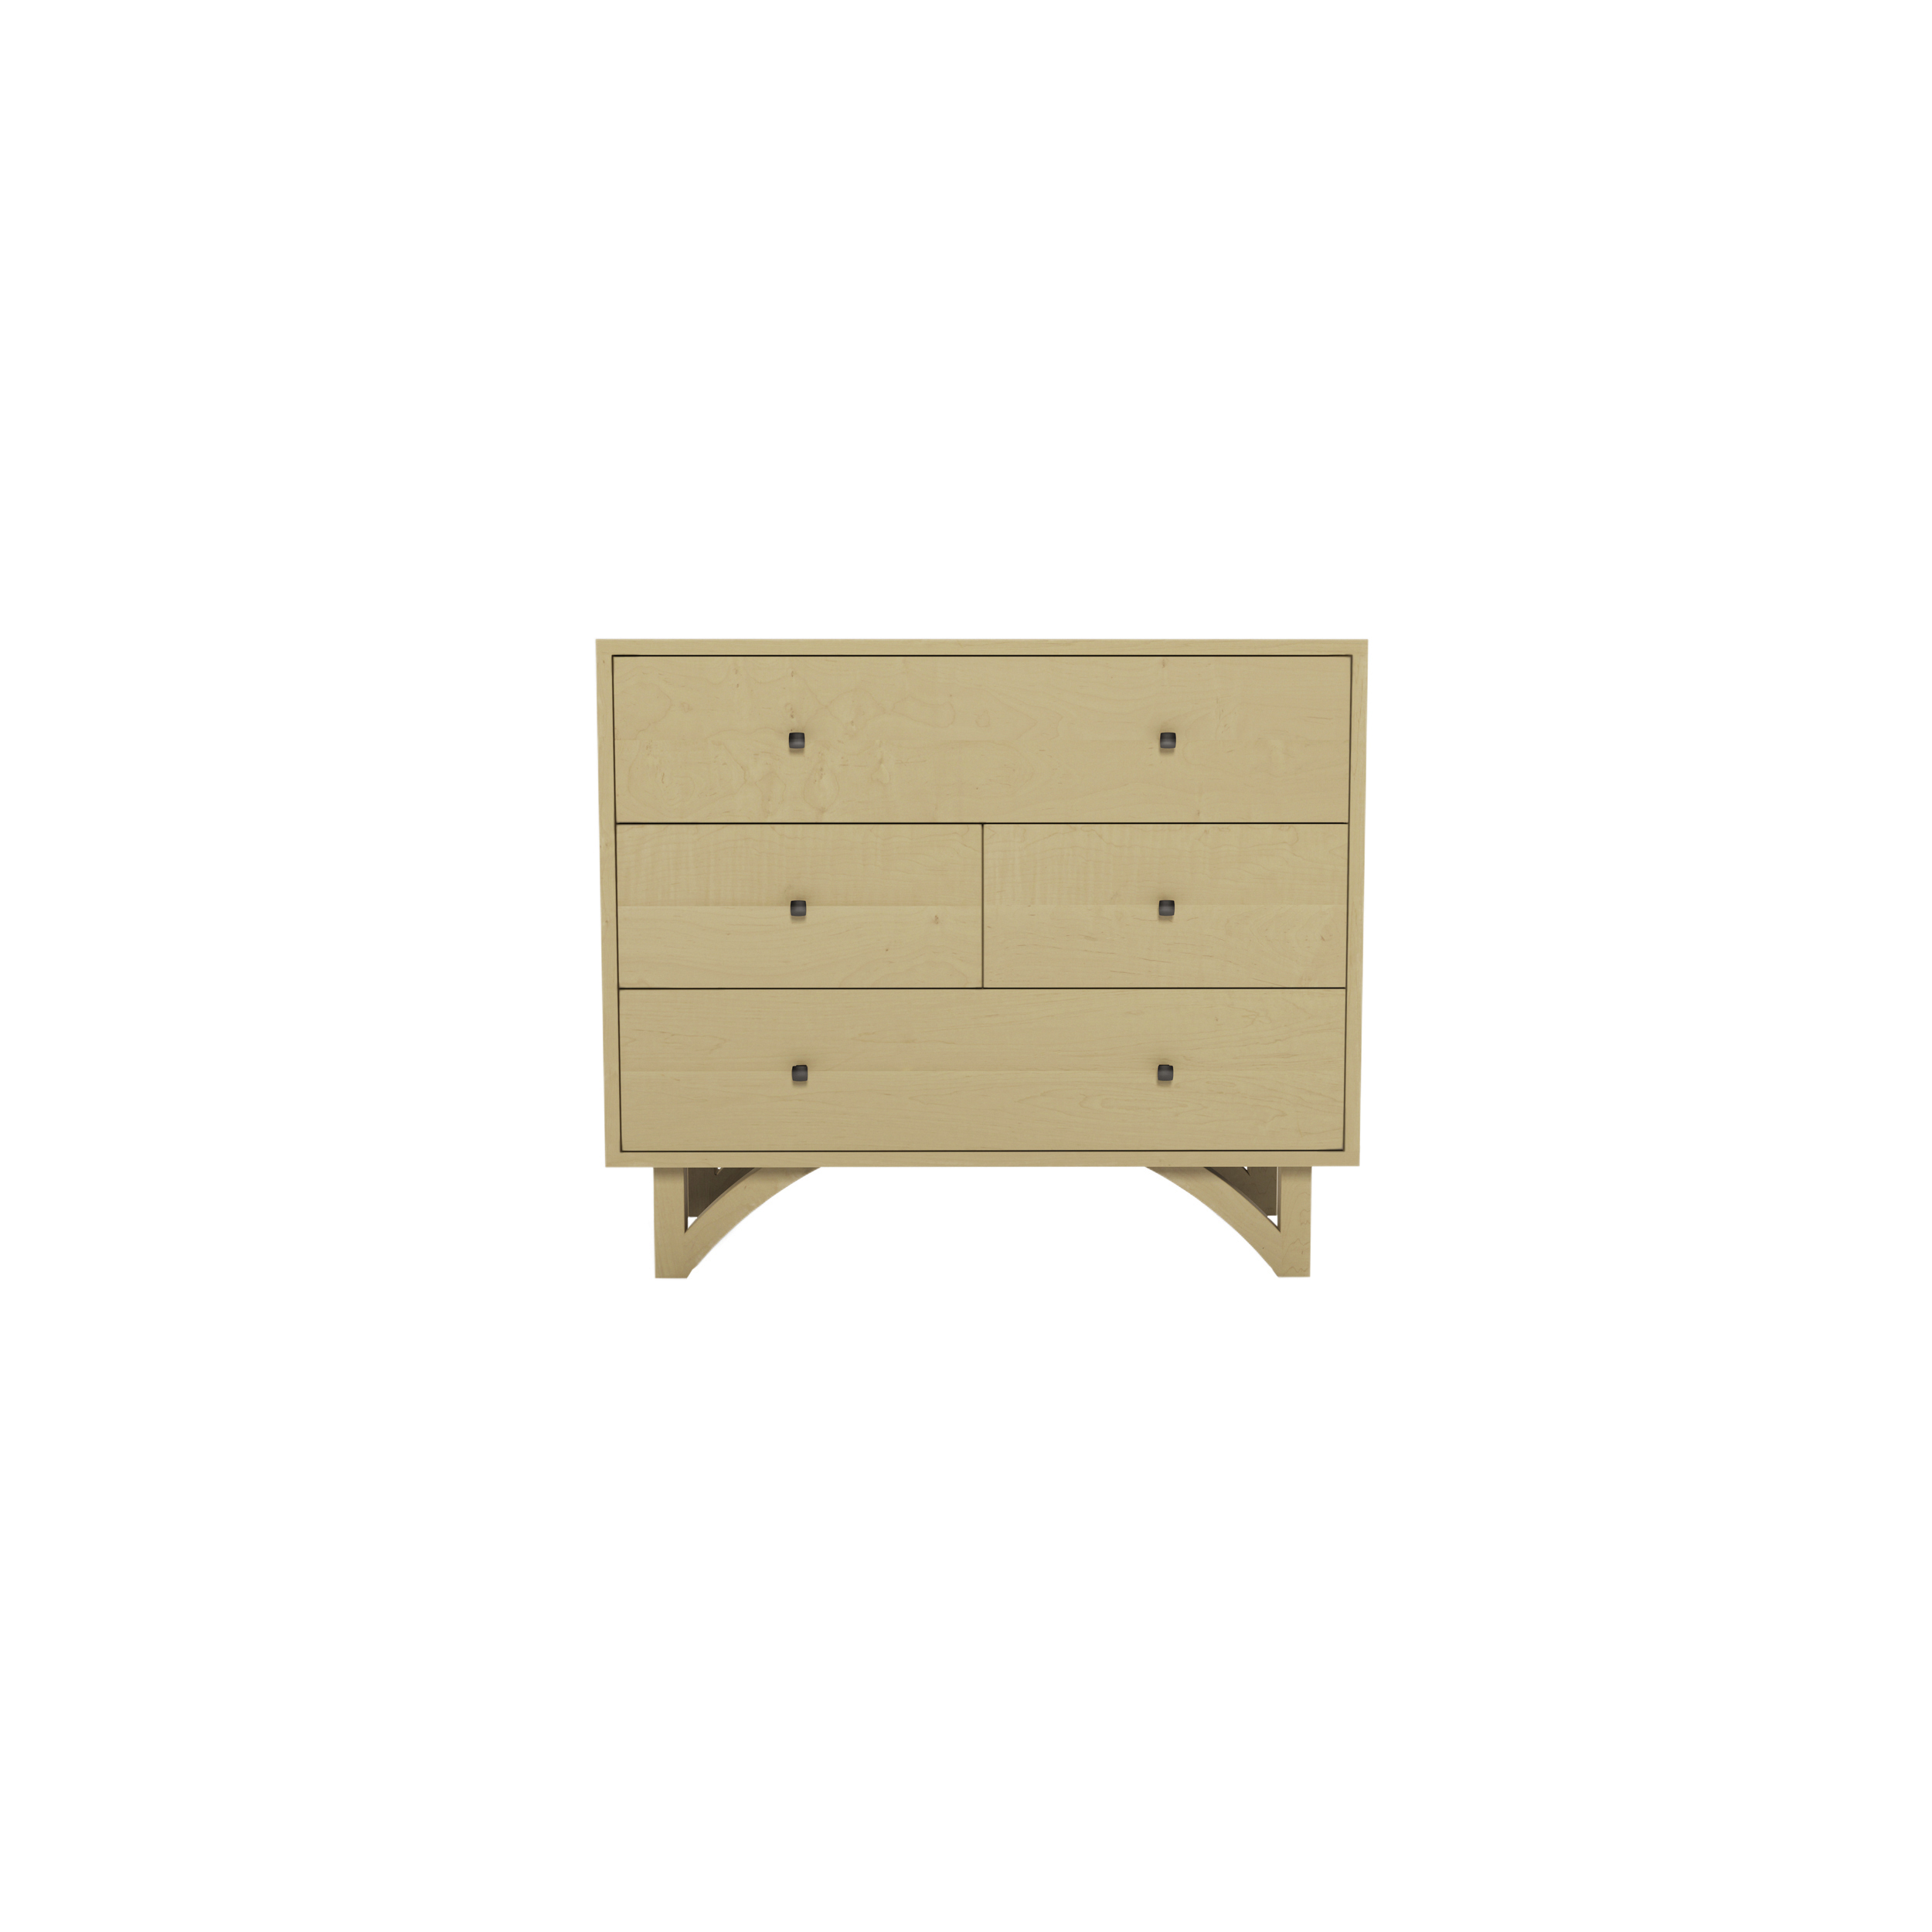 Series 454 Dresser With Four Drawers At 36″ In Width